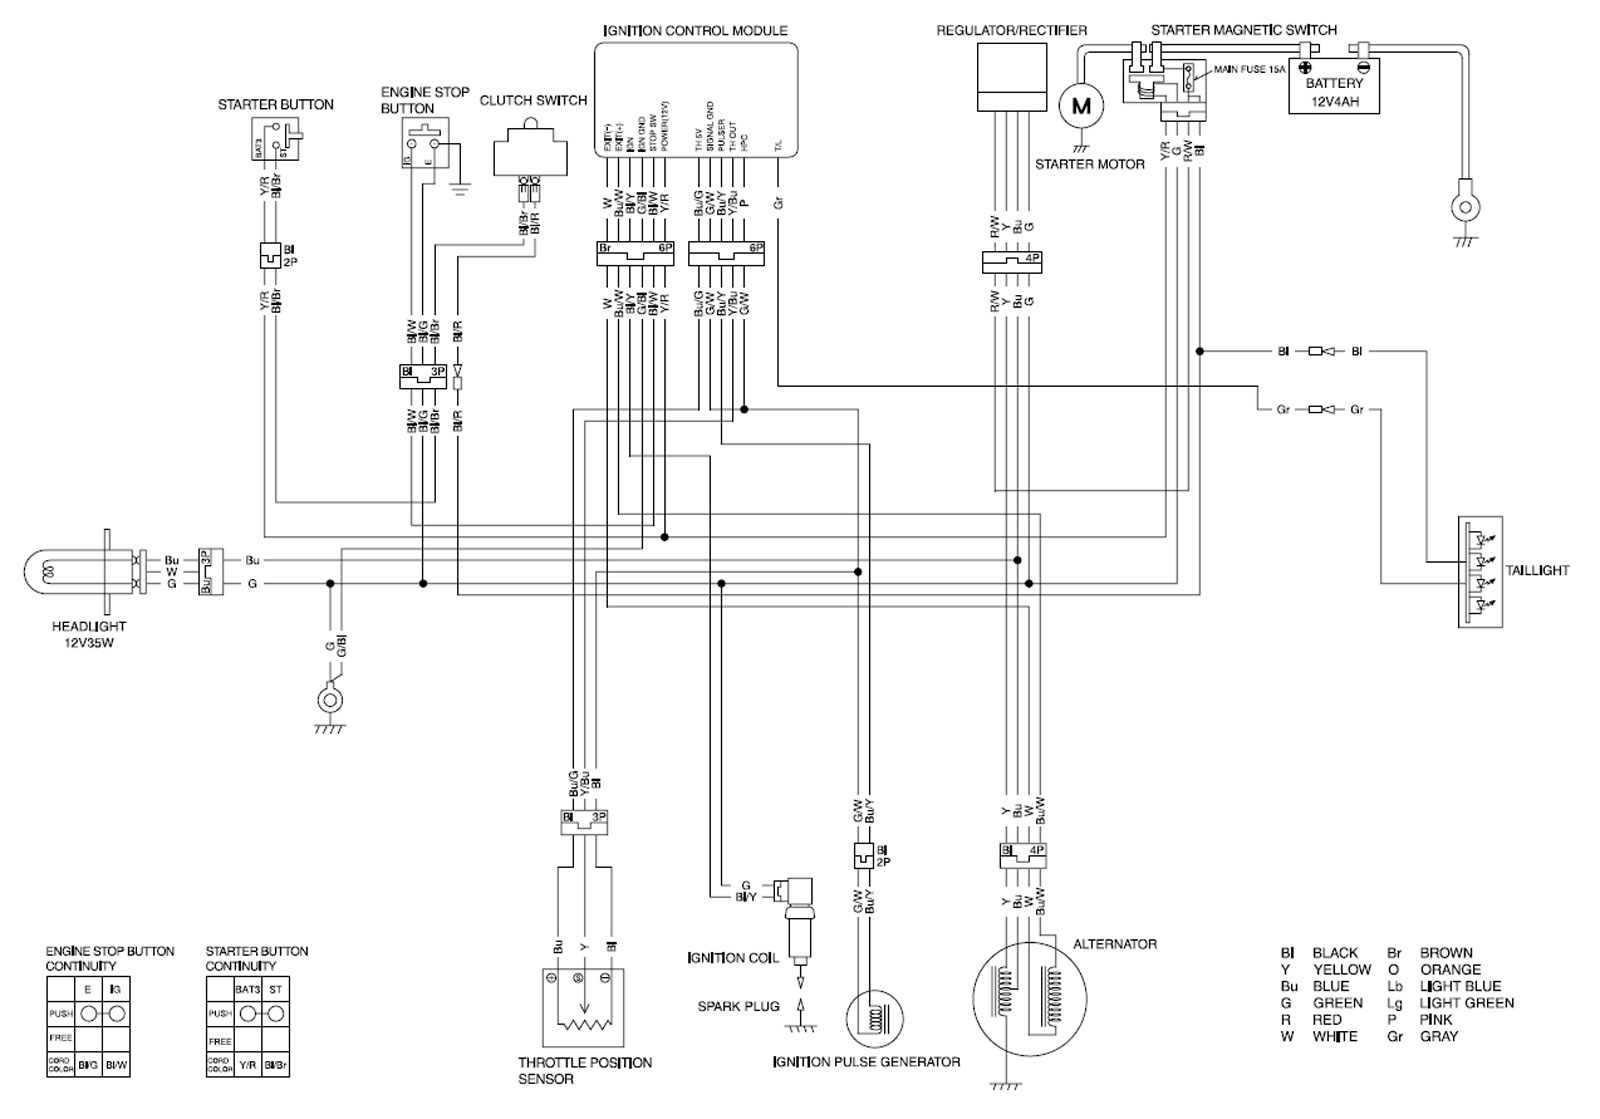 Crf250r Wiring Diagram Circuit Schematic 2010 Honda Civic Harness Another Blog About U2022